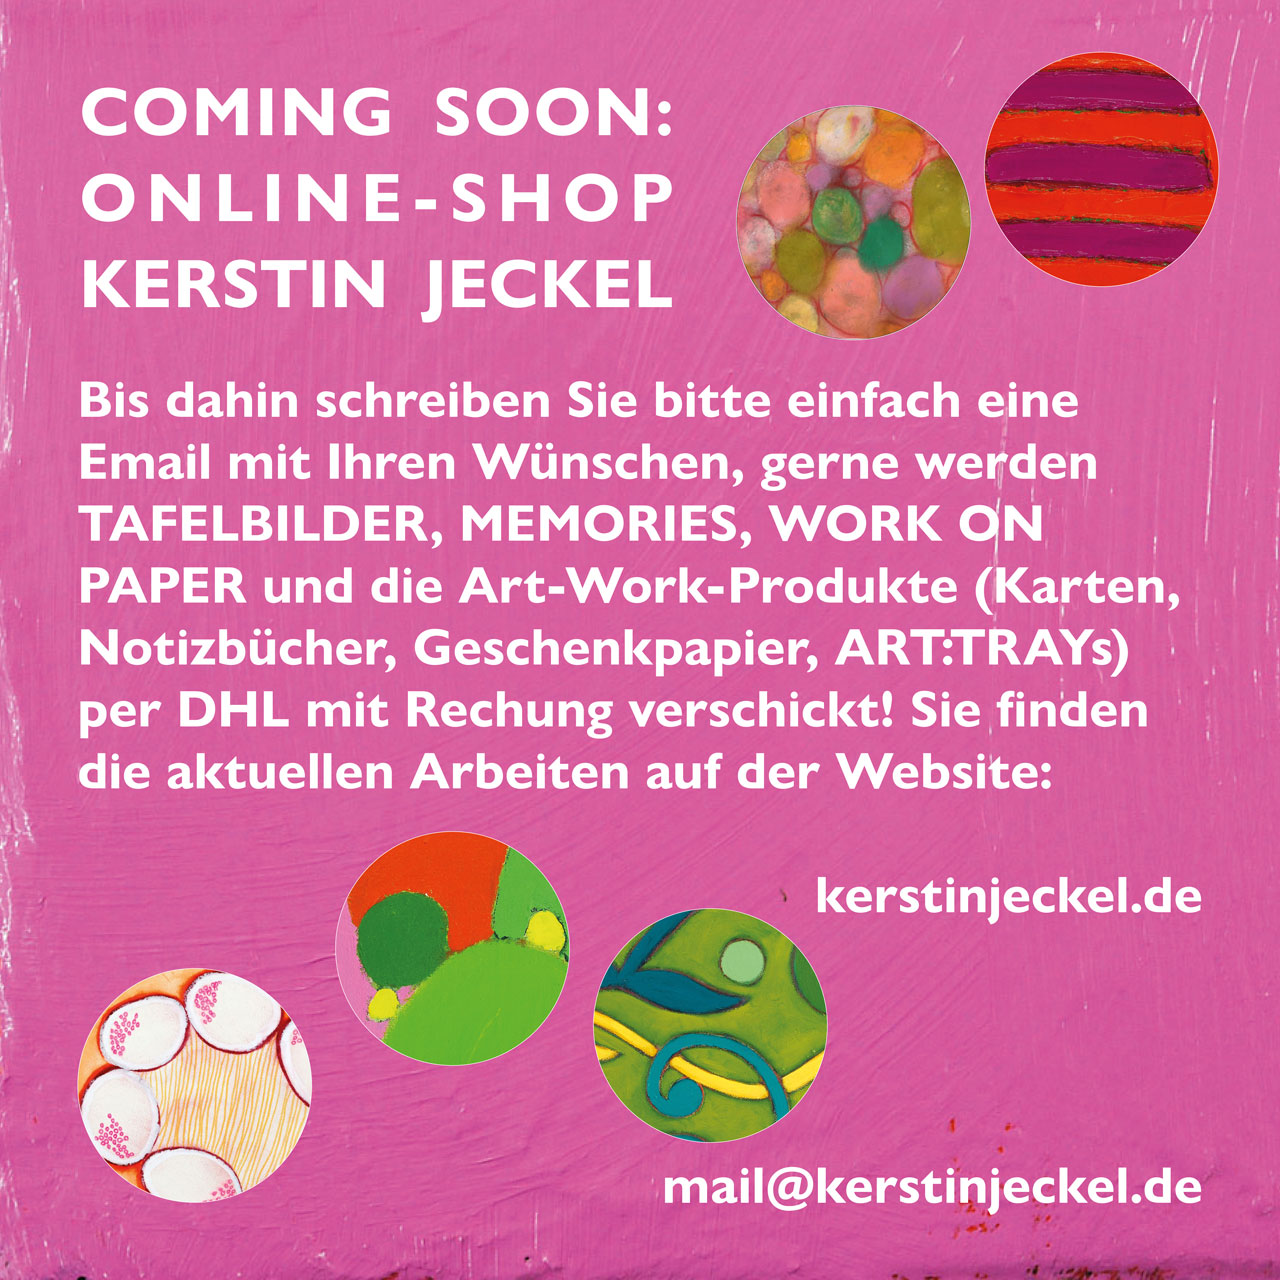 ONLINE SHOP - COMING SOON!